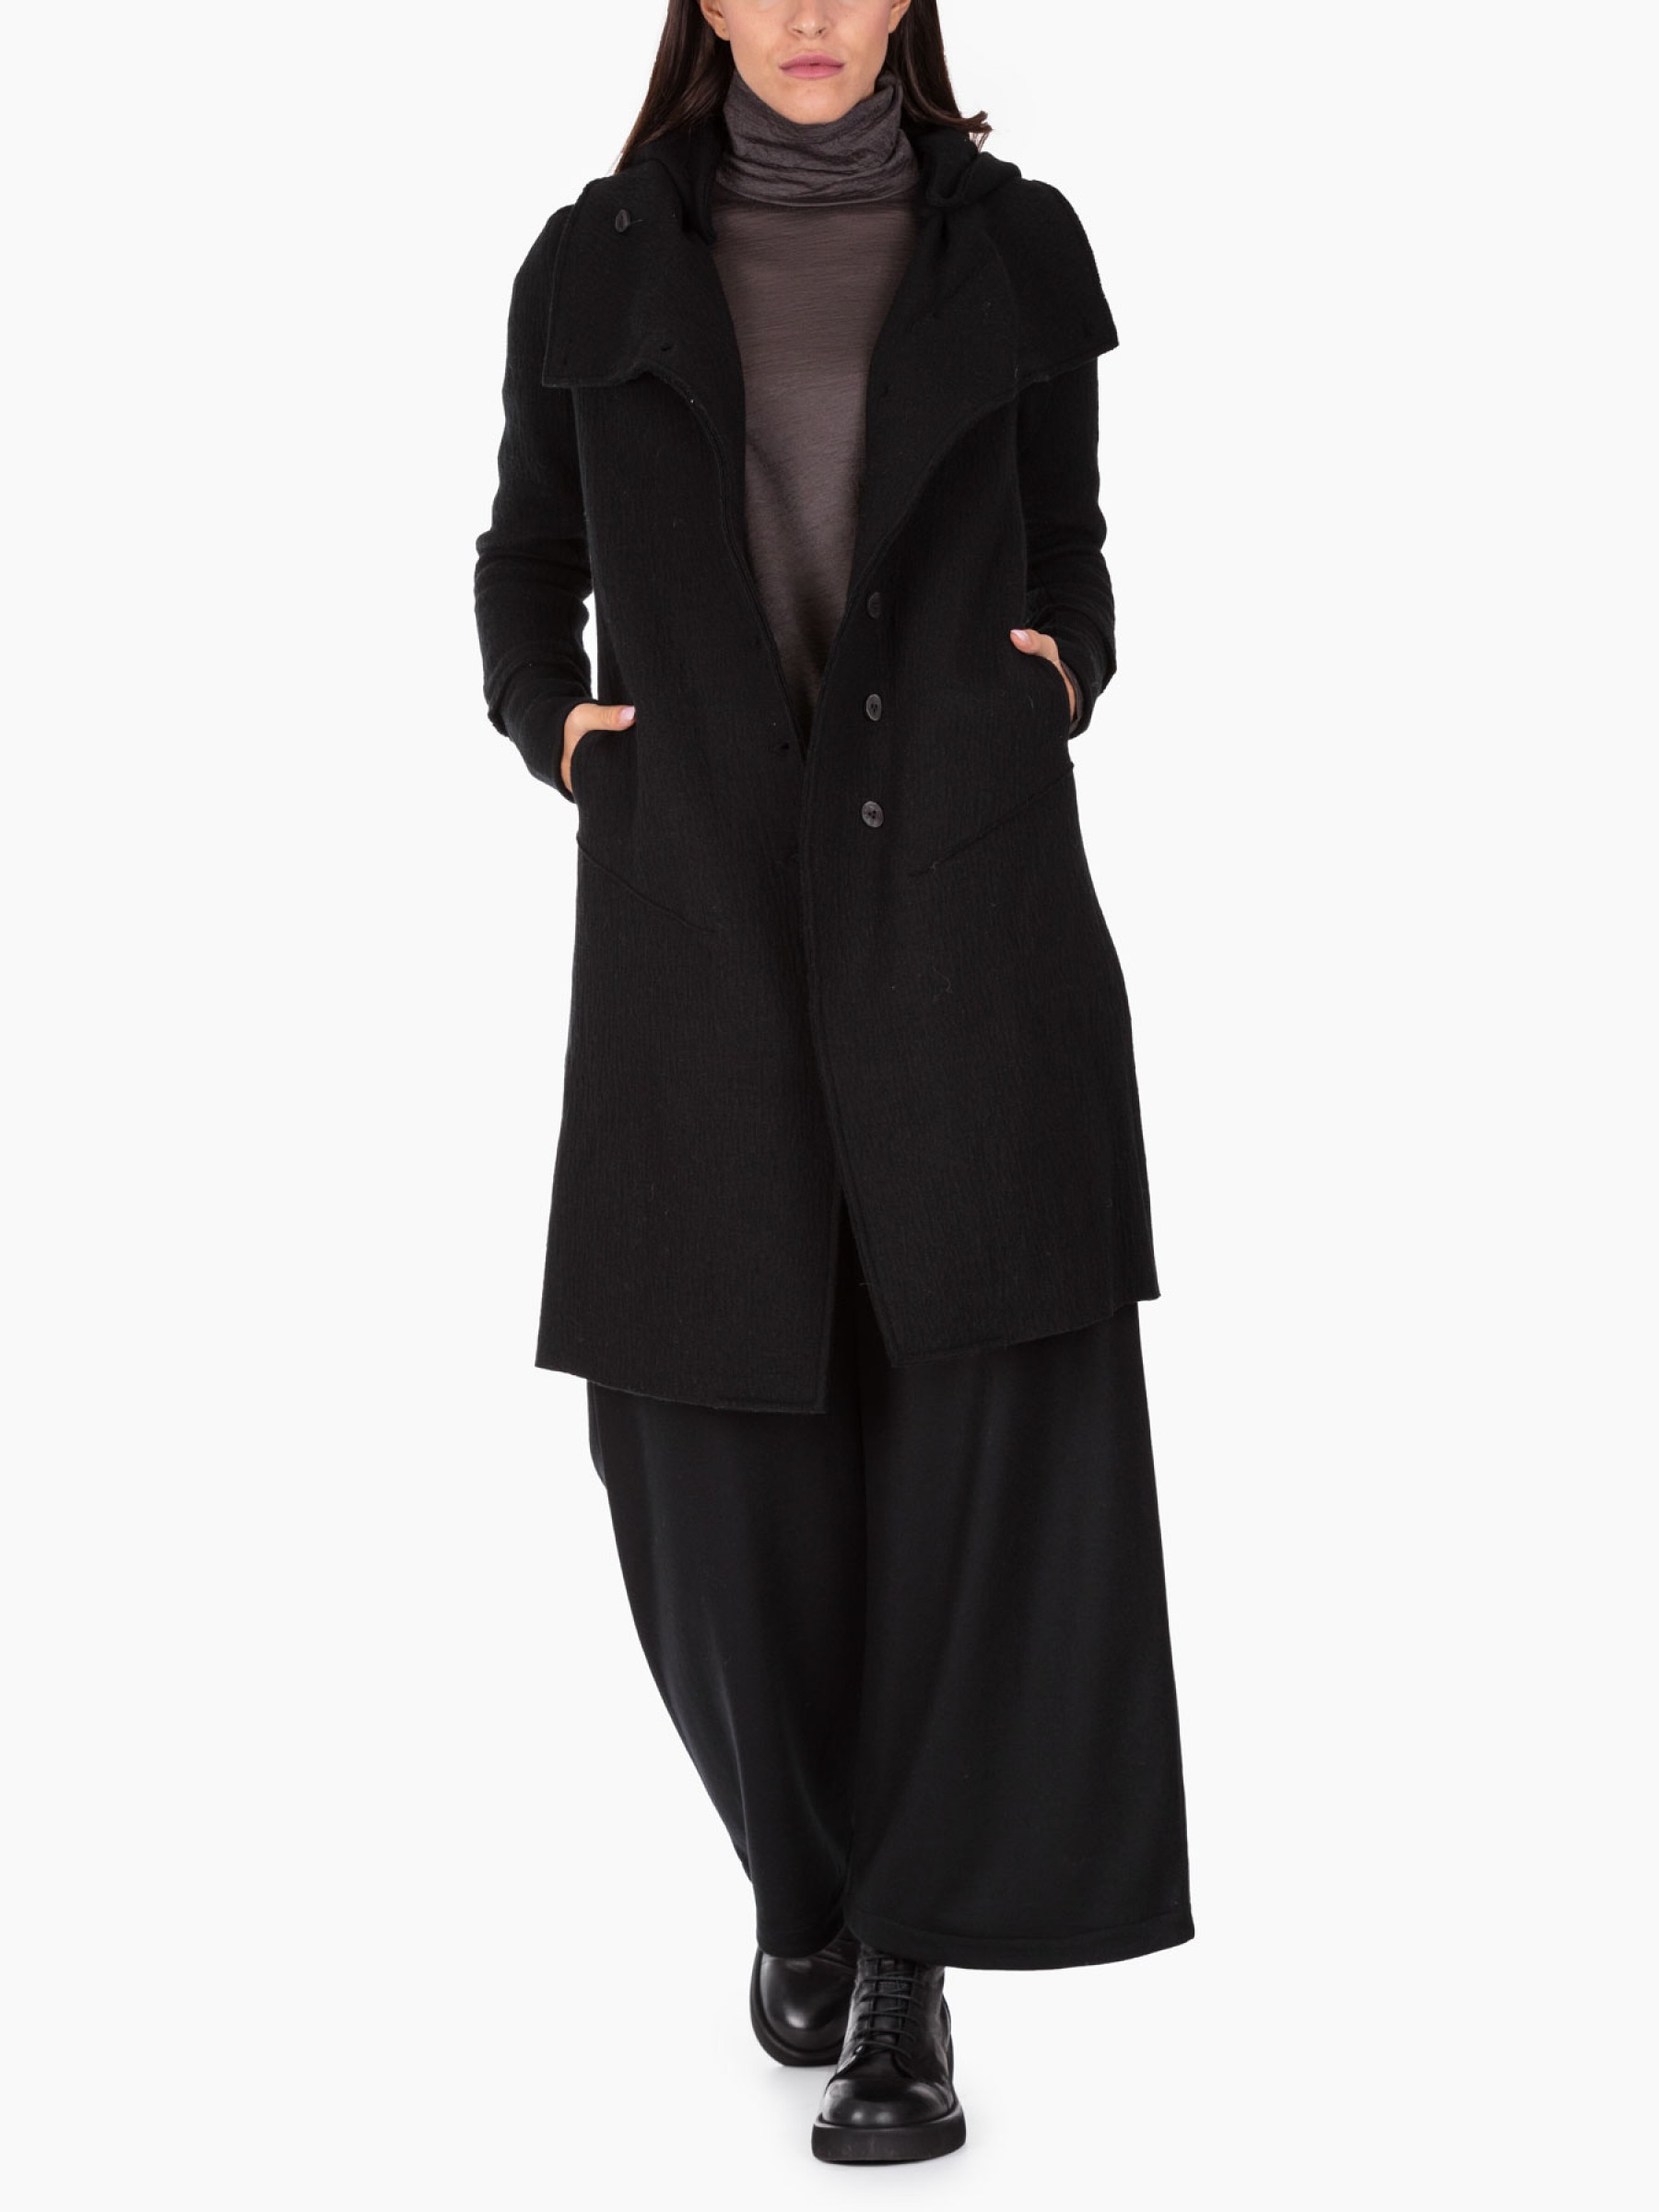 Transit Cappotto in lana AI2020 CFDTRM17521-10-BLACK